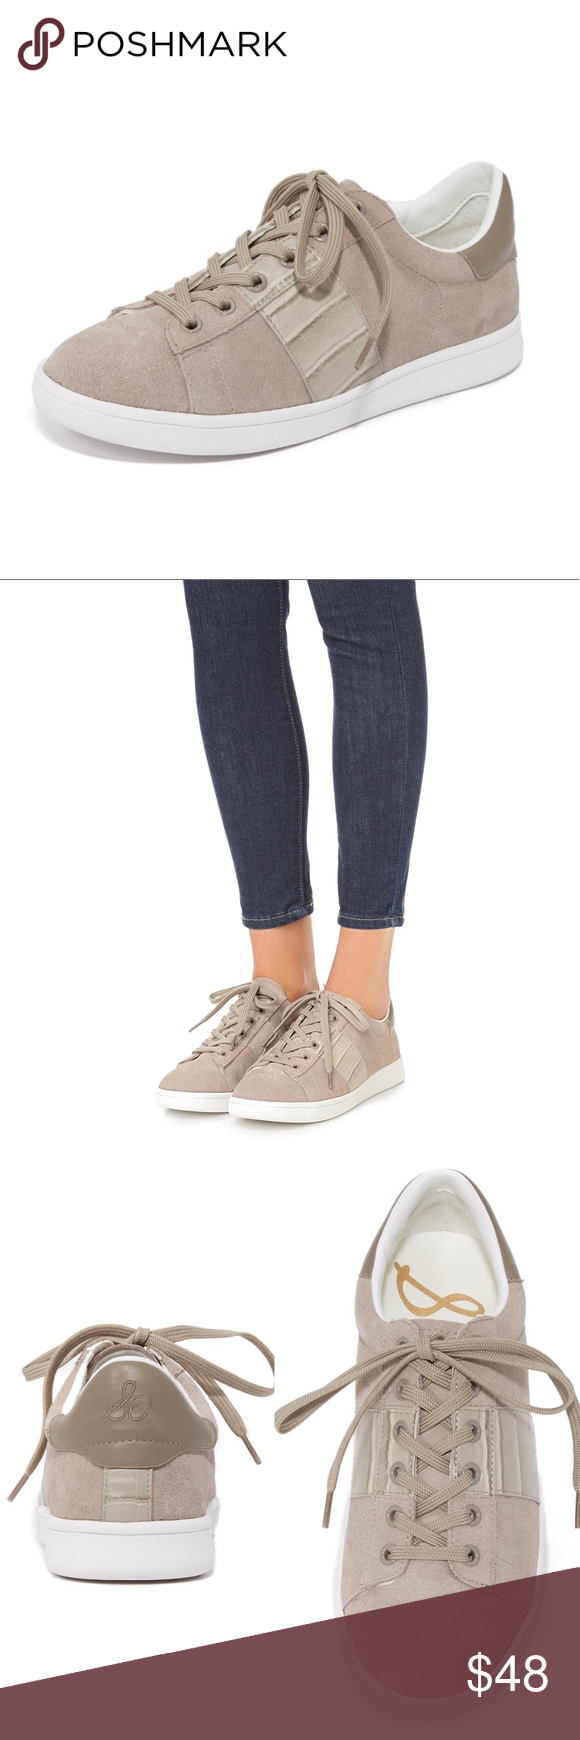 816c172fa Sam Edelman Marquette Sneaker Casual lace up suede sneaker with  croc-embossed side accents. Brand new